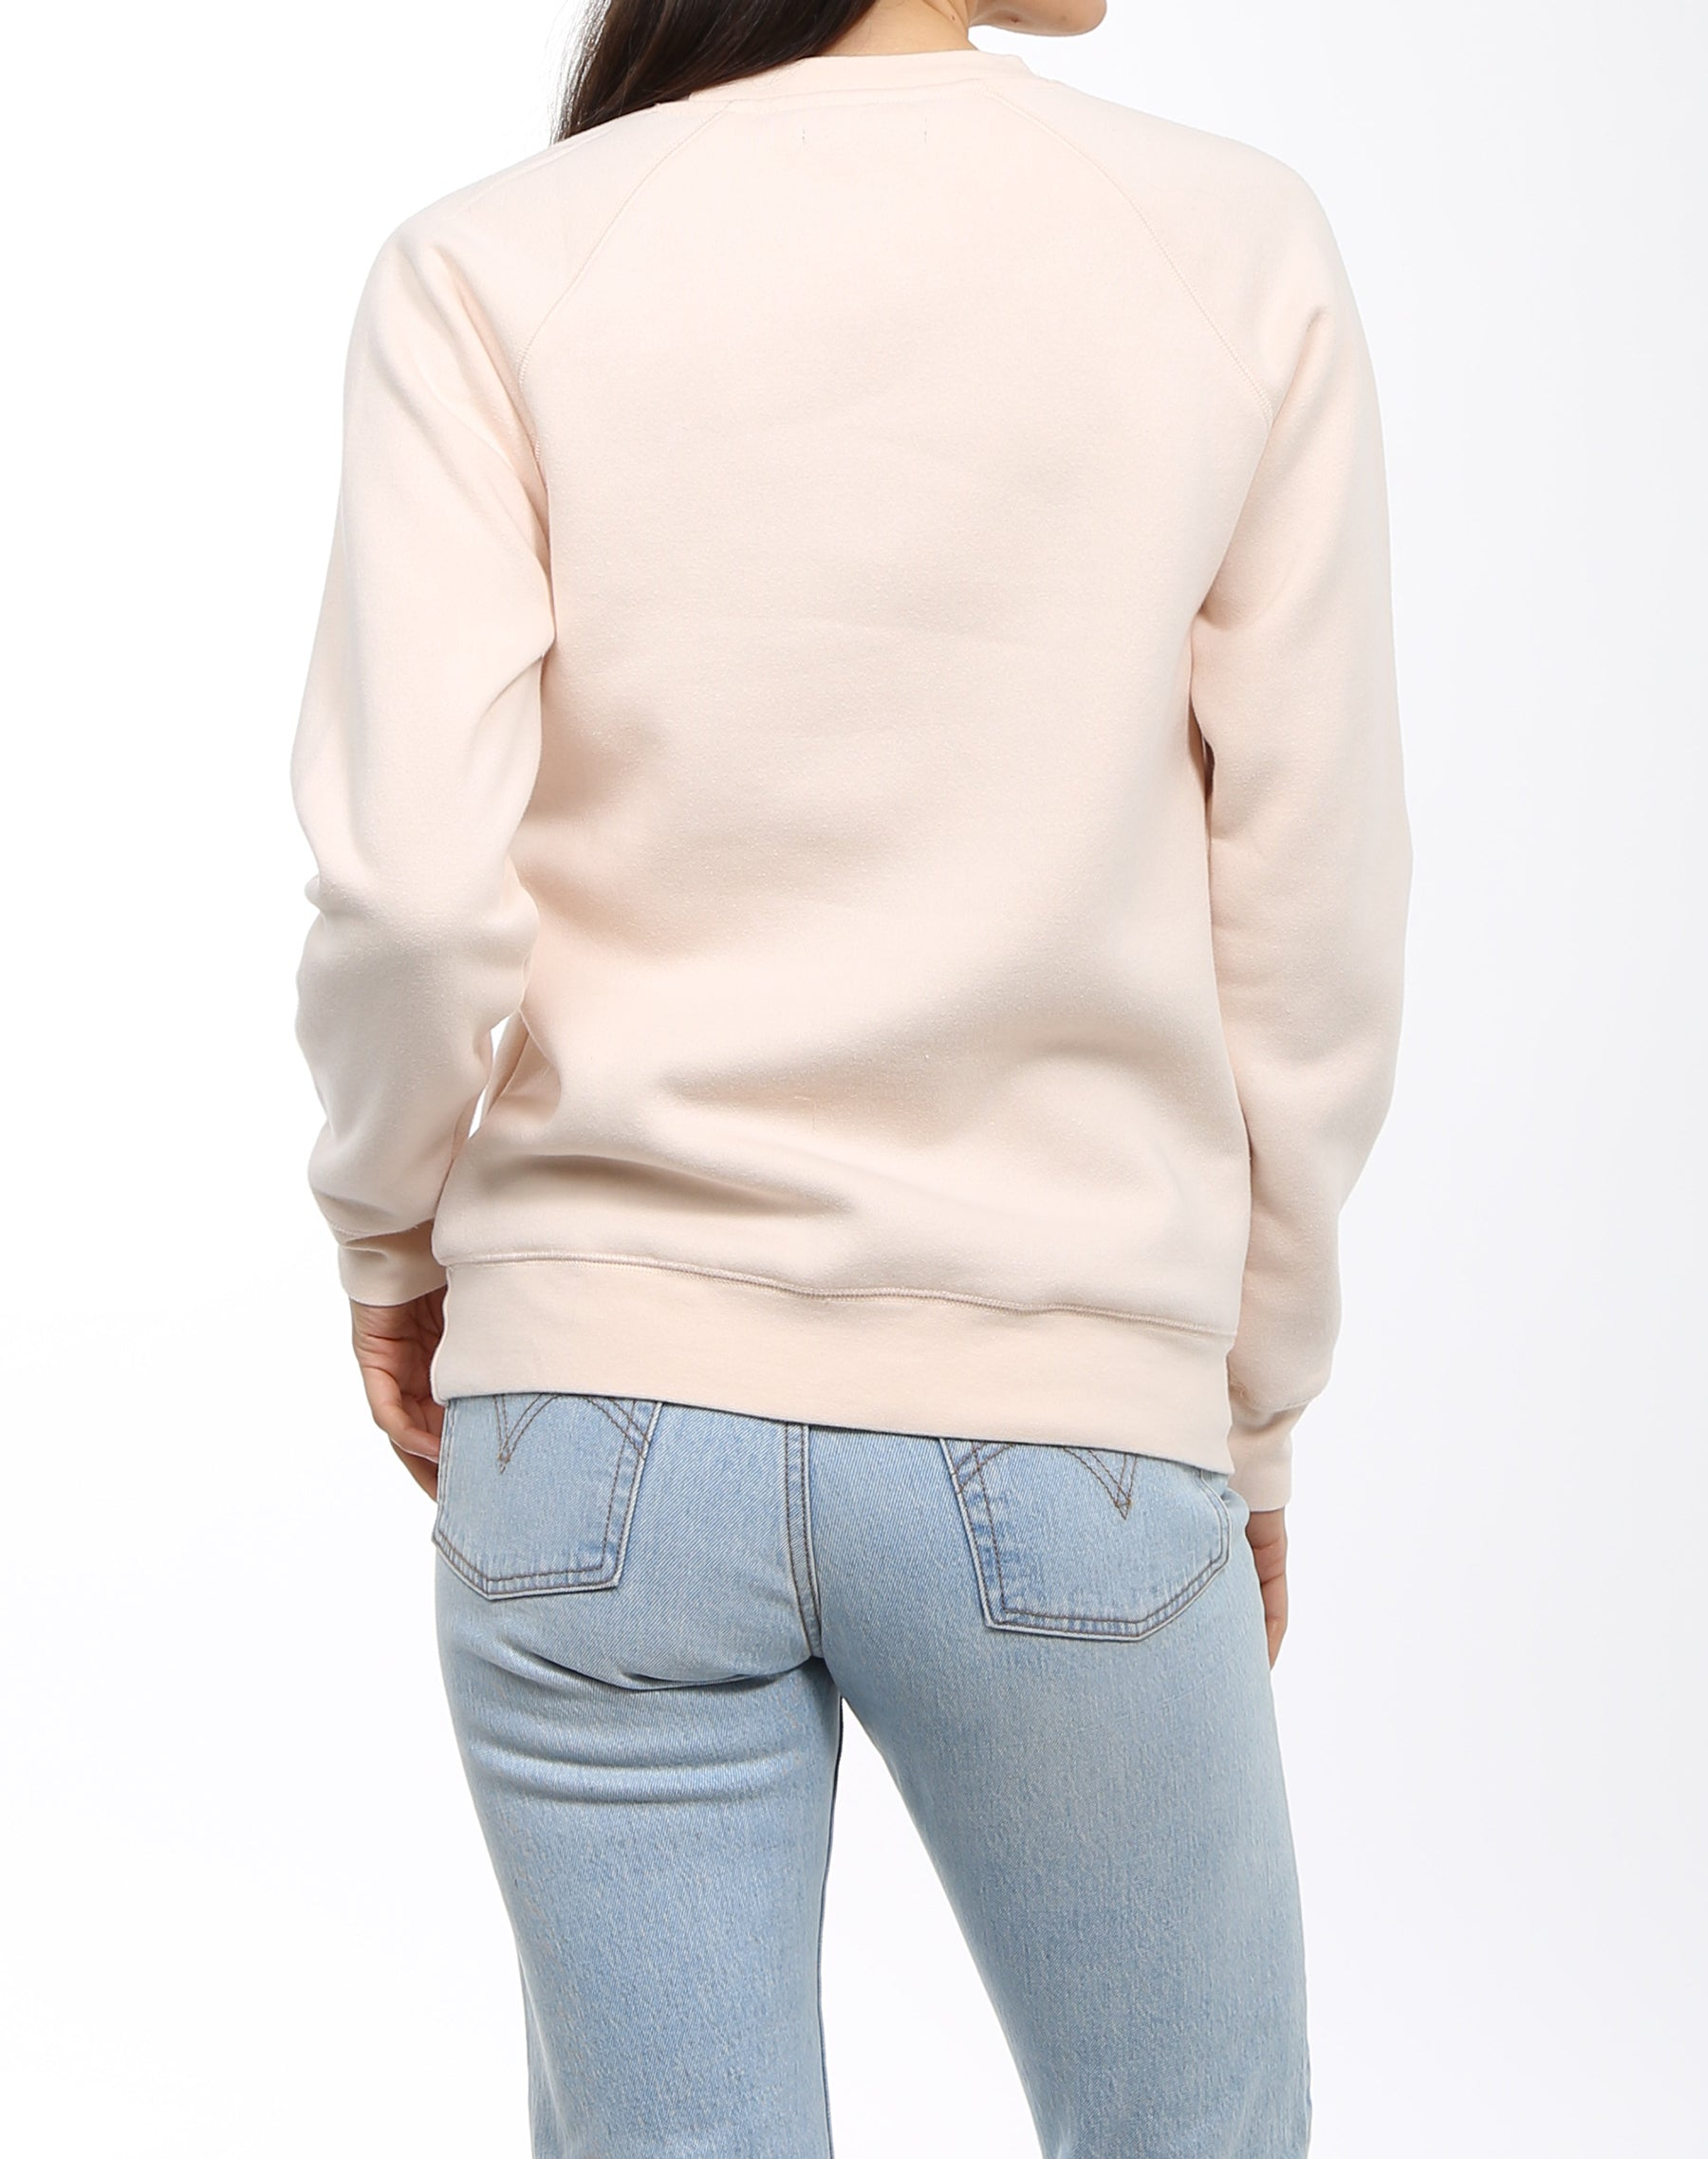 The back of a model photographed wearing the Brunette Crew Neck Sweatshirt in Peach Crush by Brunette the Label.